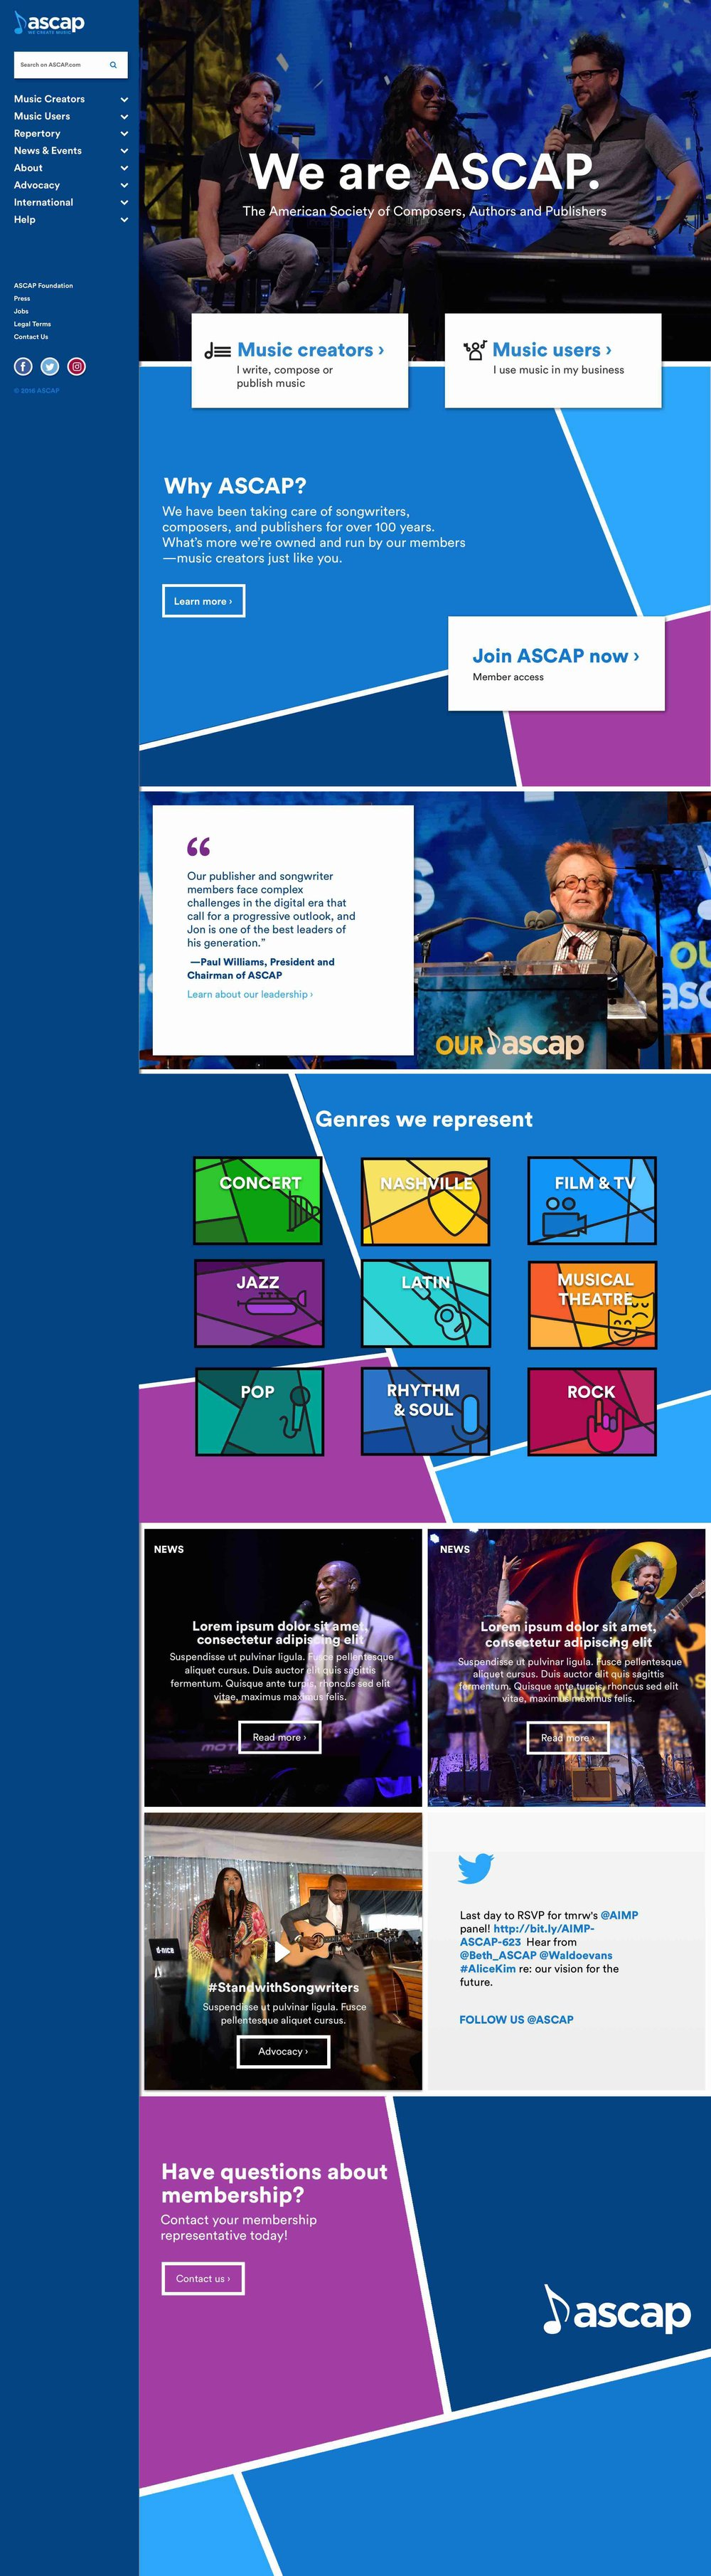 ASCAP.com homepage log scroll format, highlighting news & events that ASCAP has across the country. As well as an easy way to showcase our genres to our members.